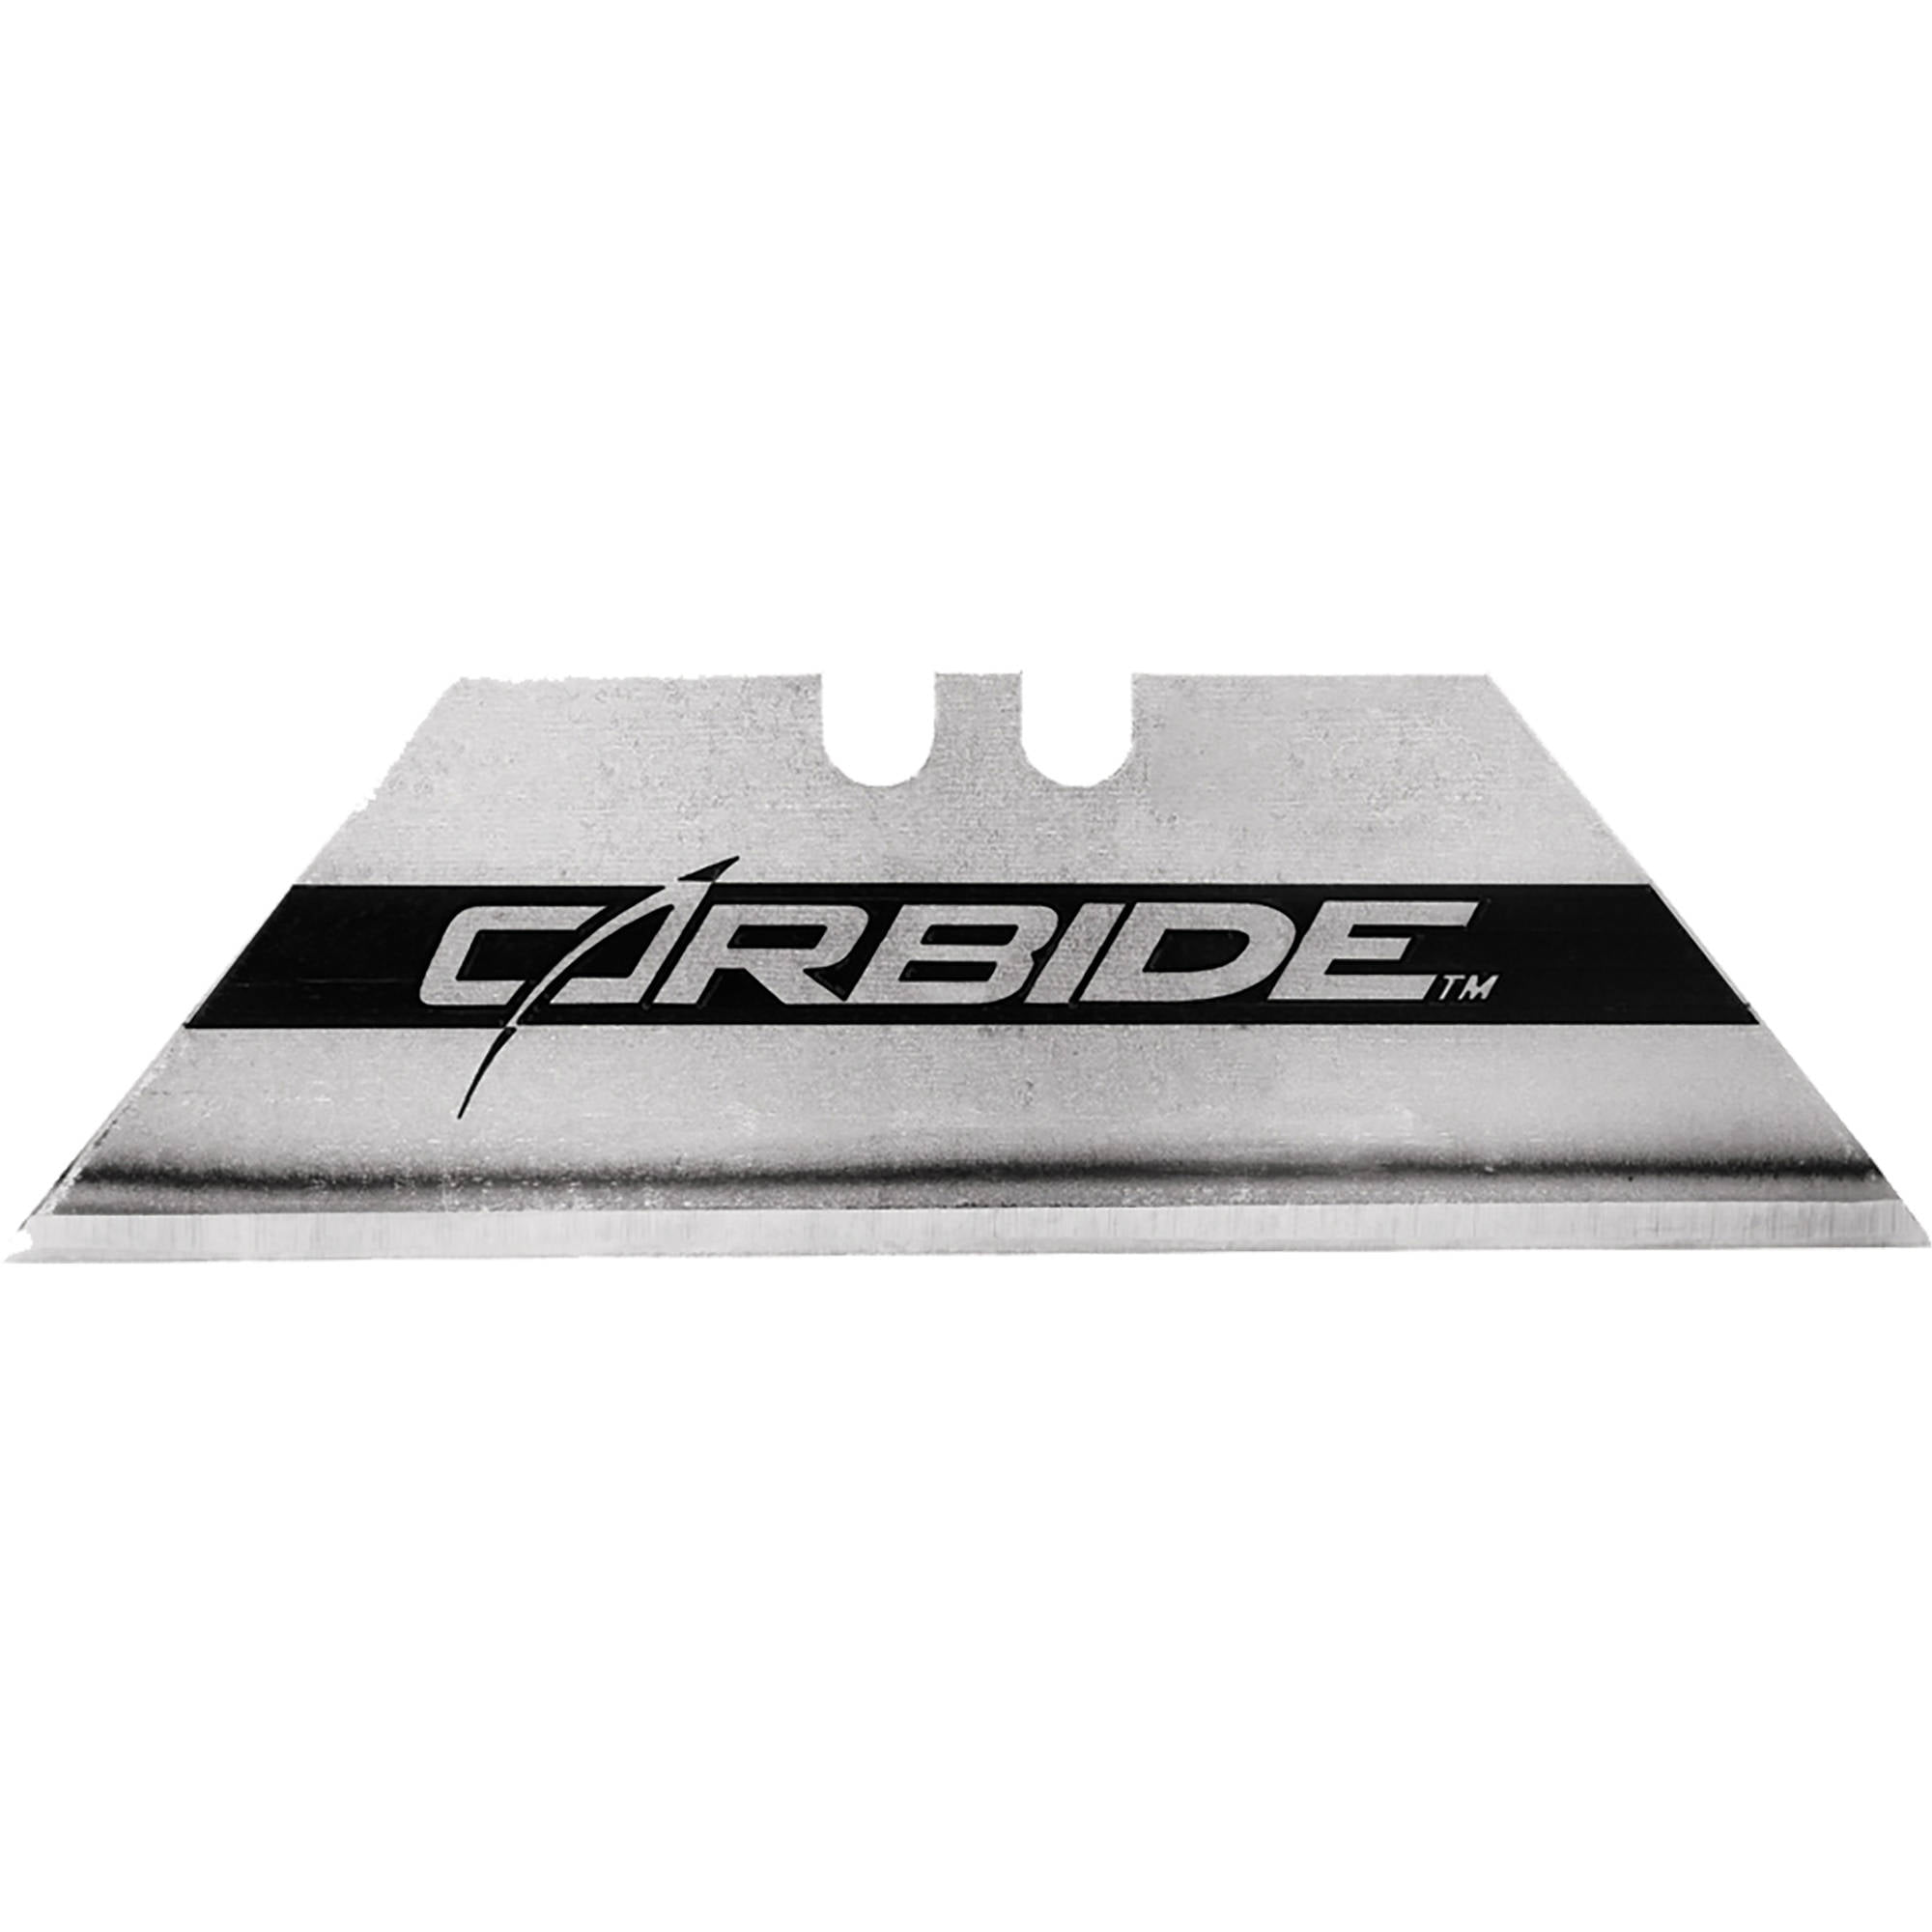 Stanley Hand Tools 11-800 Carbide Utility Blades 5 Count by Stanley Hand Tools